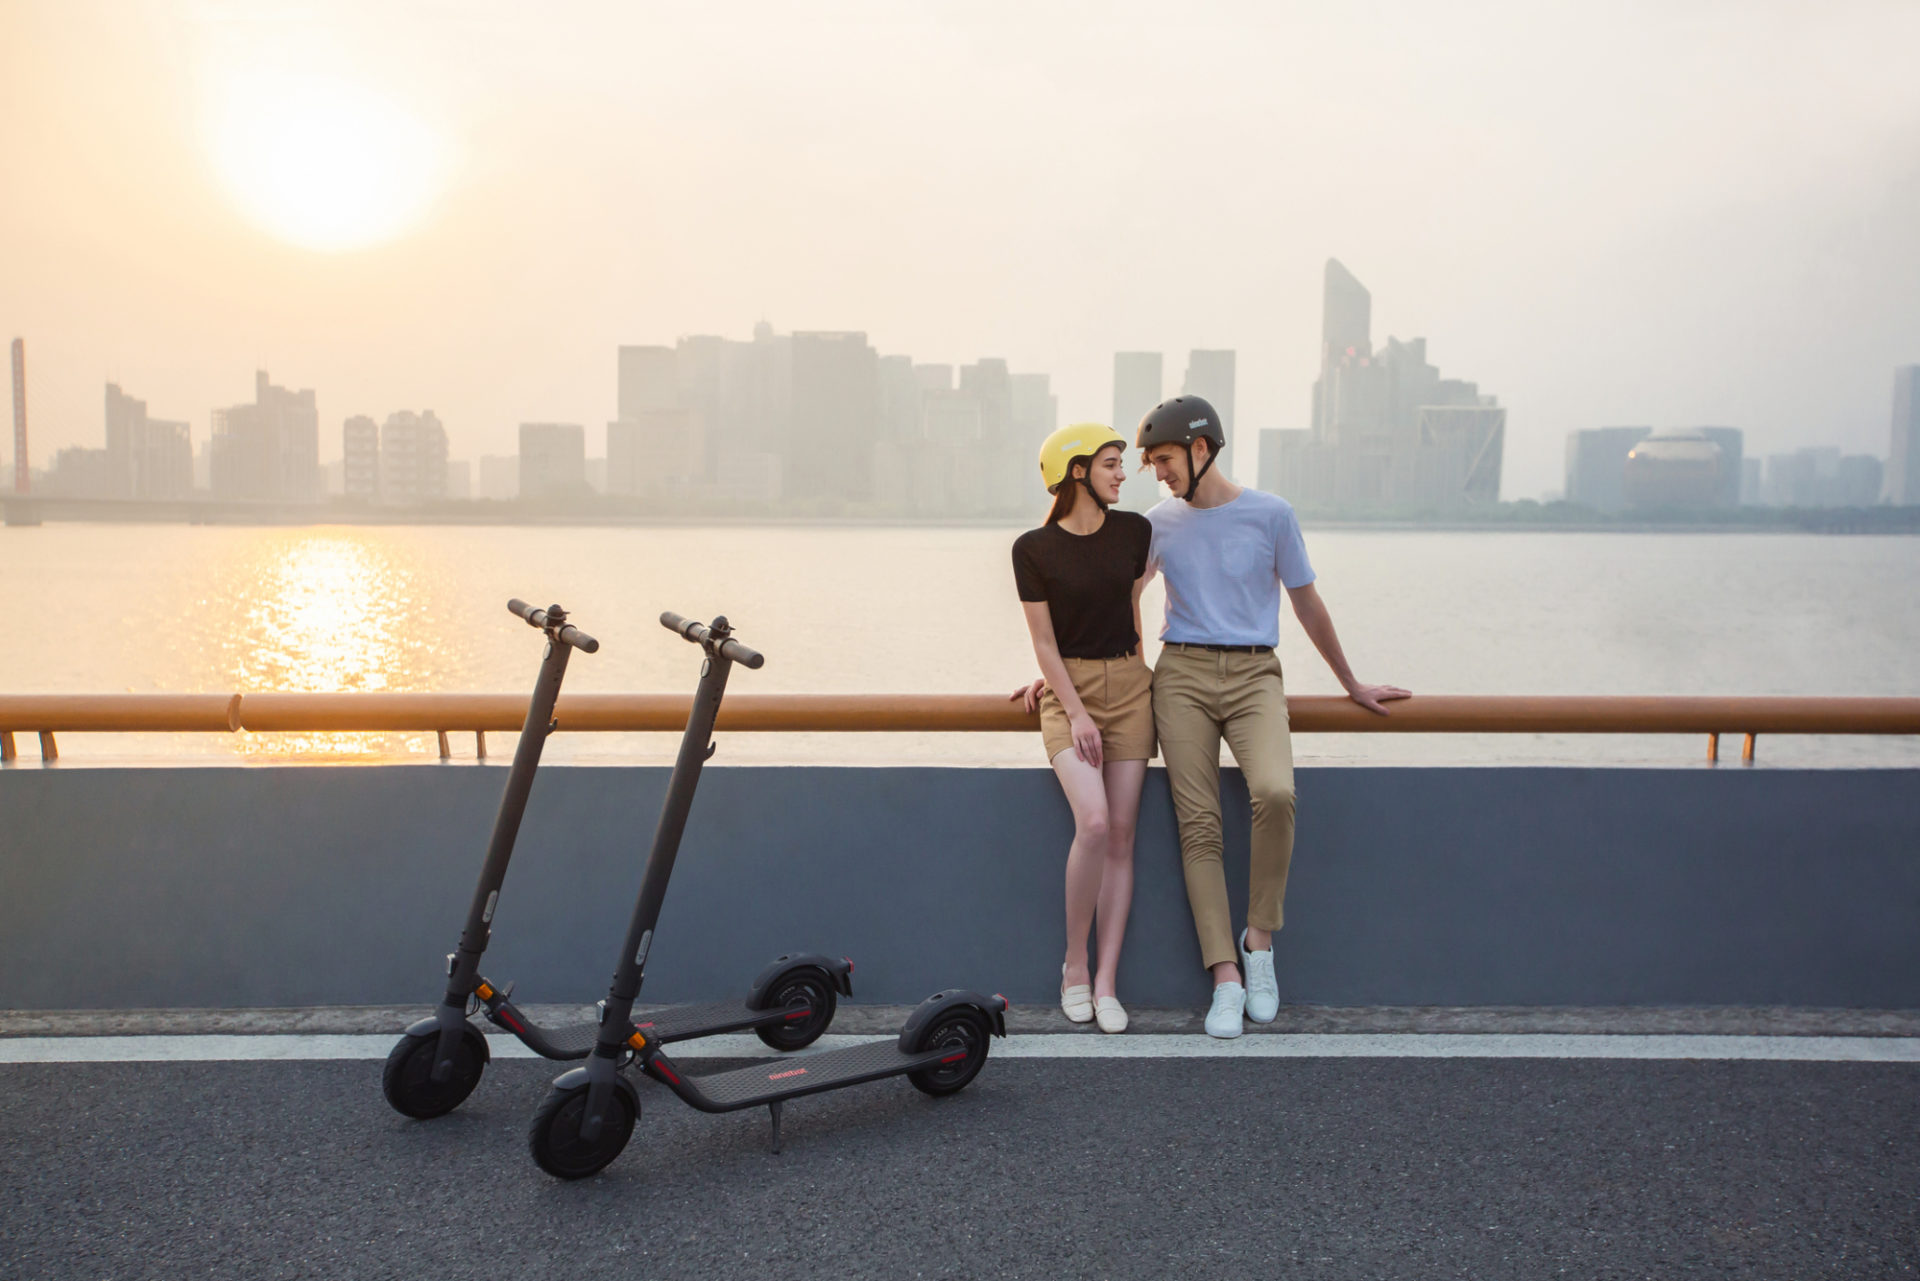 [hero] Ninebot KickScooter E25D Powered by Segway